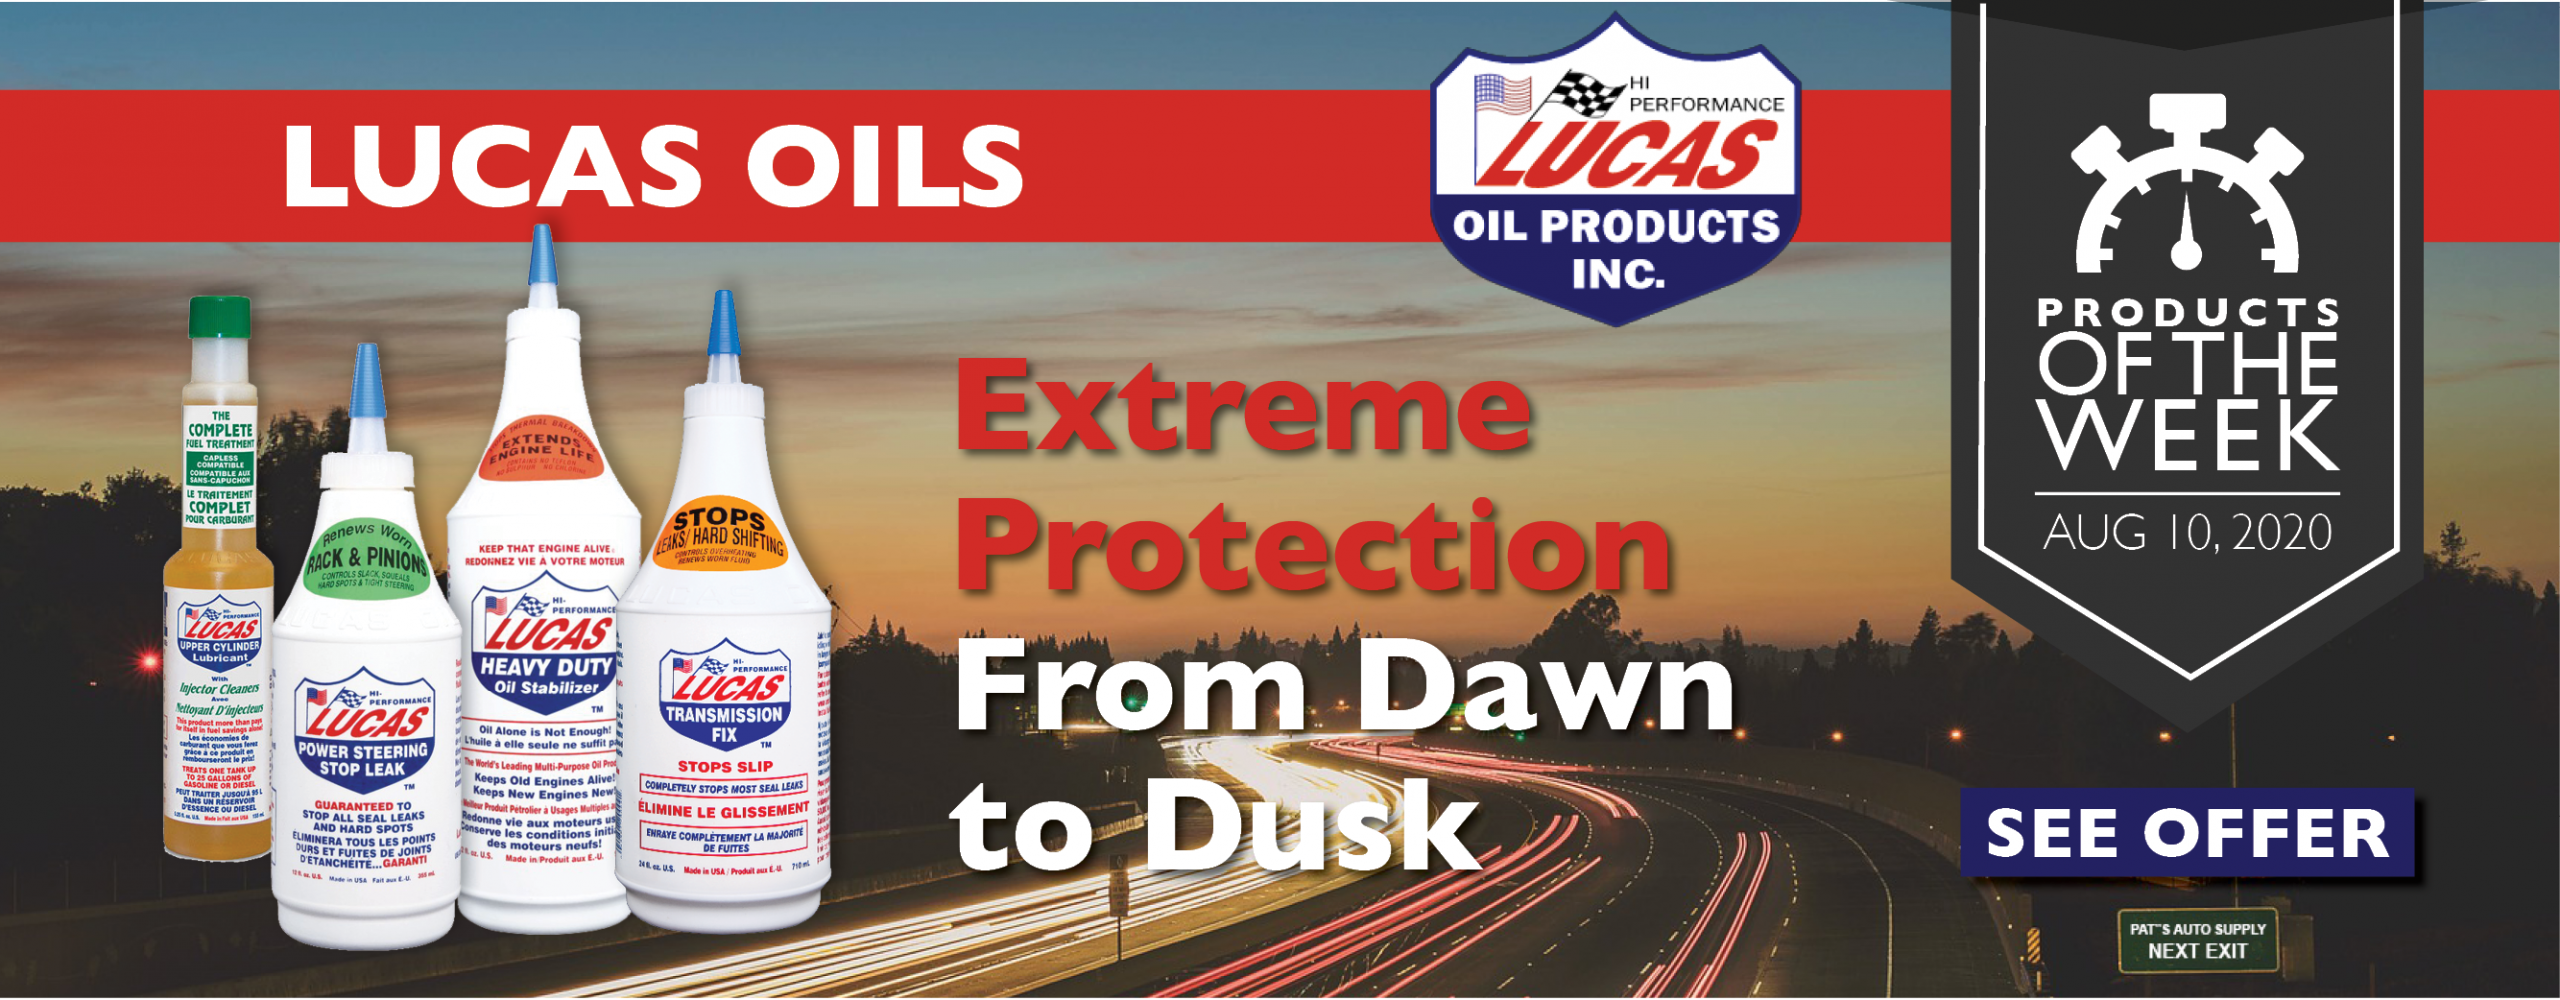 Pat's Products of the Week - Lucas oils - August,10 2020